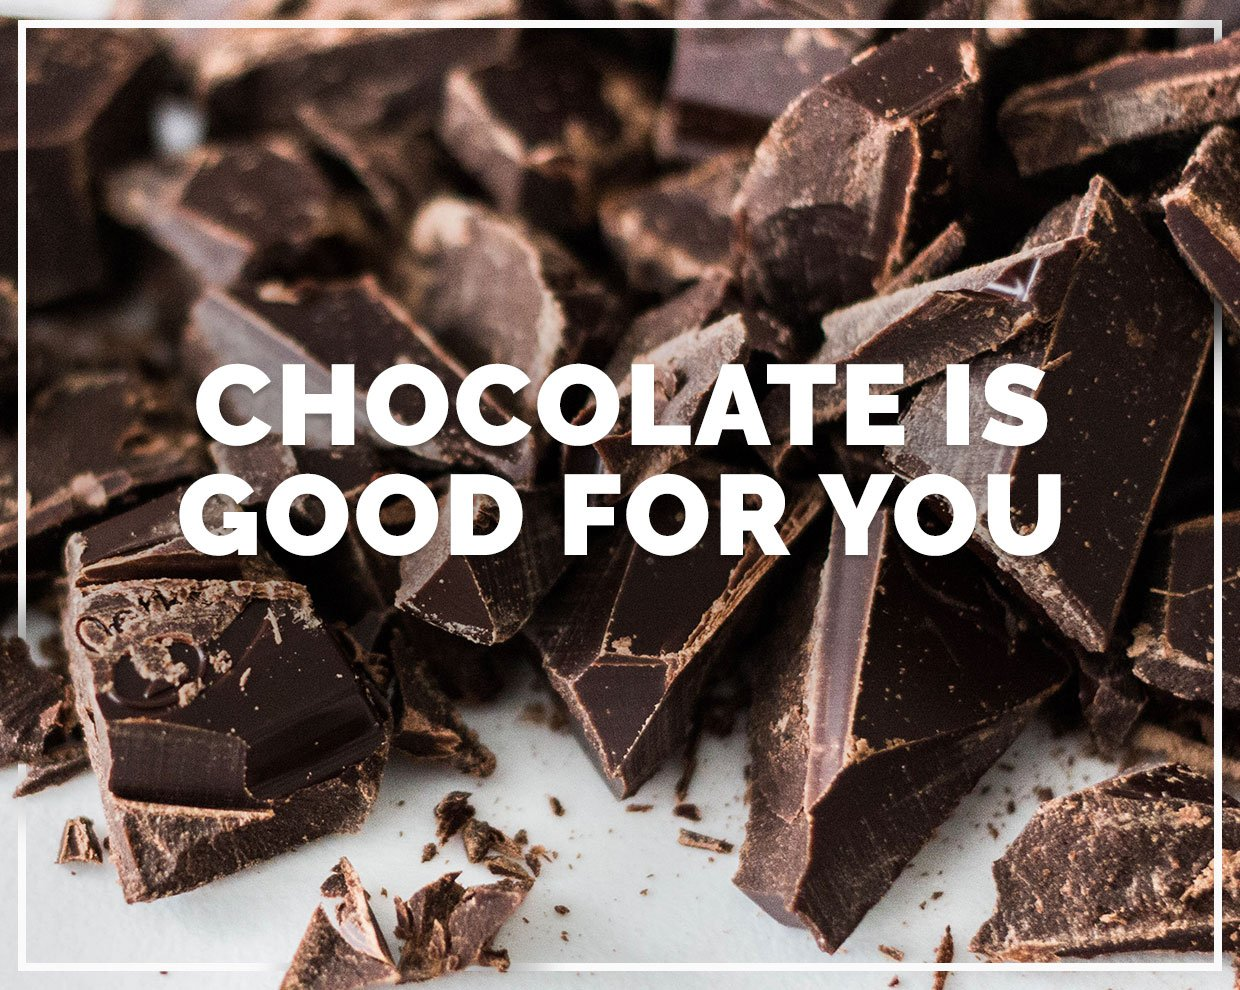 Chocolate is good for you